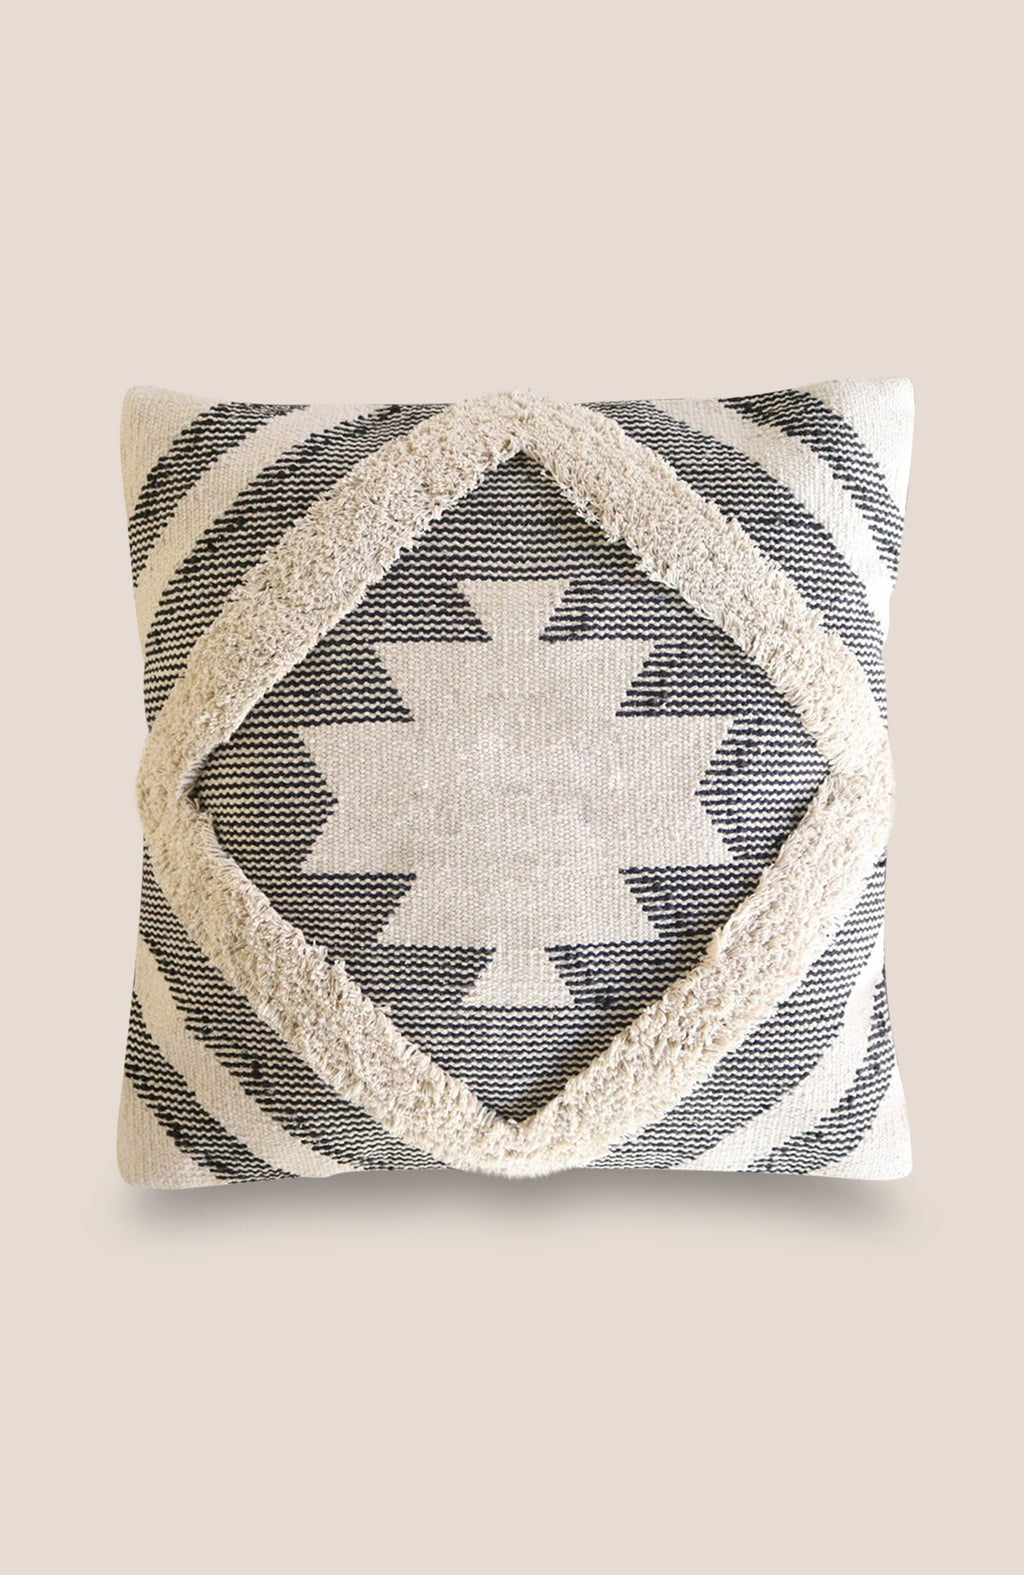 Pillow Cover Lara - Home Decor | Shop Baskets, Ceramics, Pillows, Rugs & Wall Hangs online